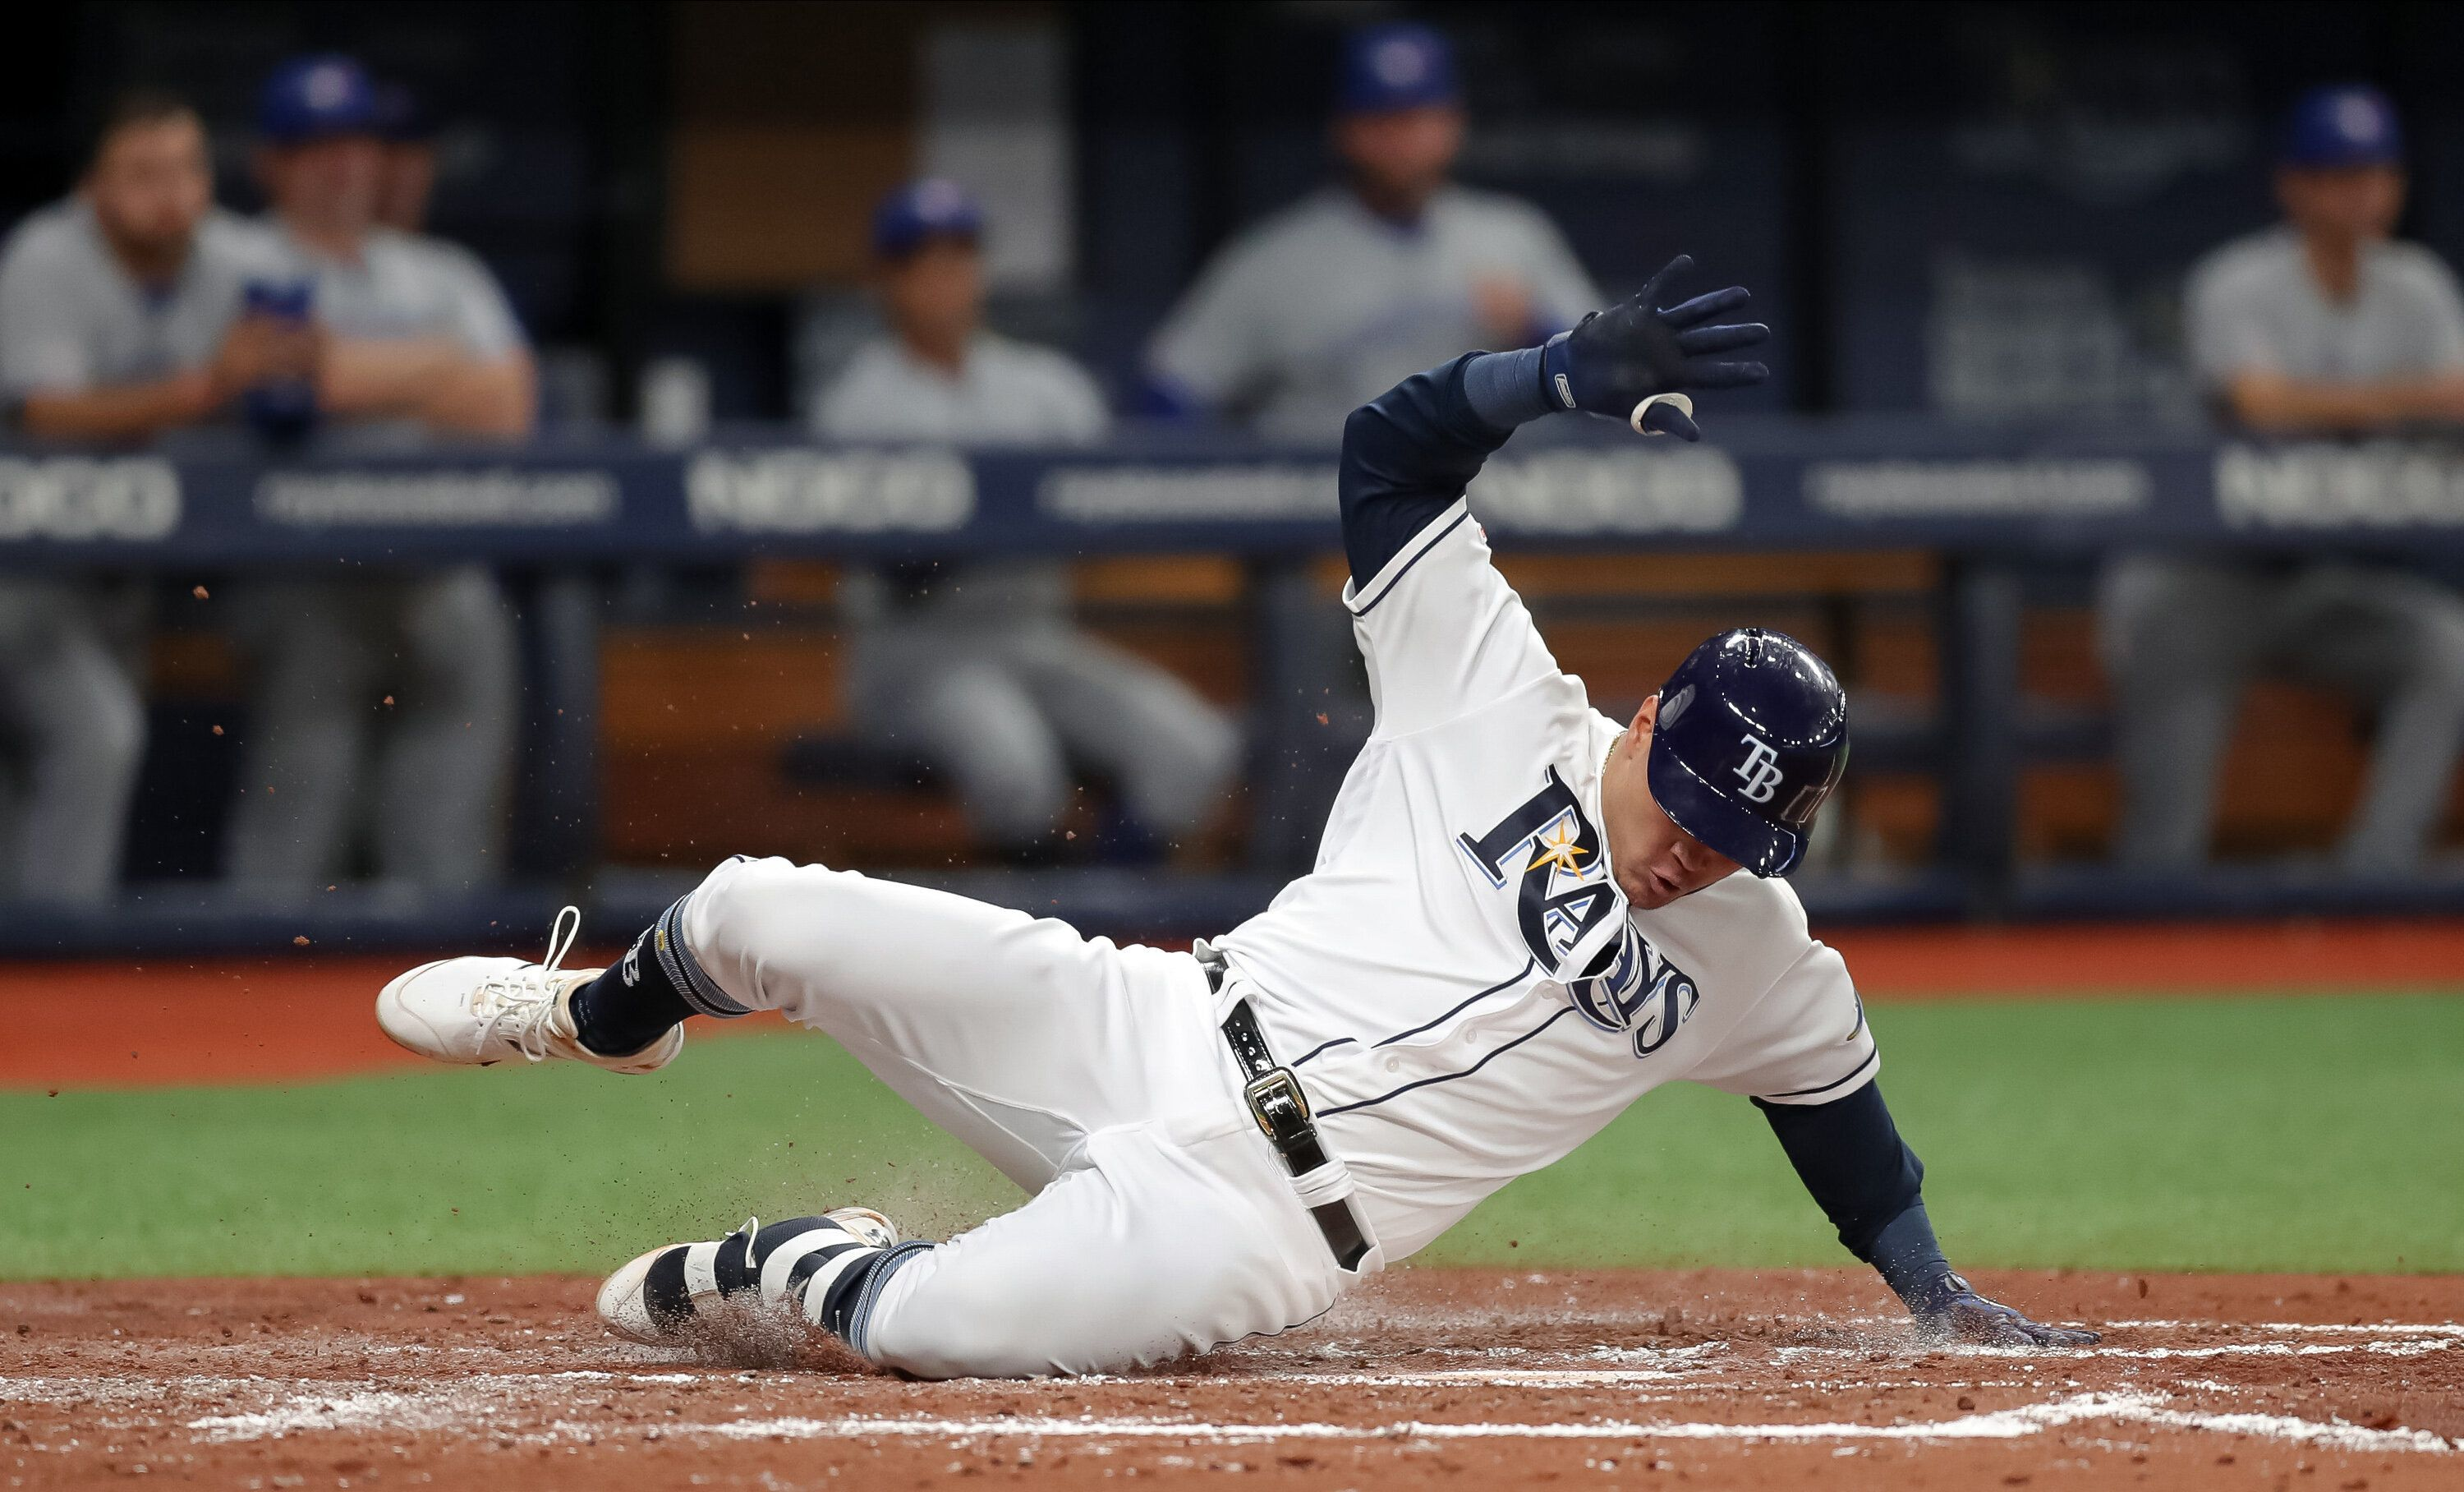 ST. PETERSBURG, FL - MAY 28: Avisail Garcia #24 of the Tampa Bay Rays slides in with an inside-the-park home run in the third inning of a baseball game against the Toronto Blue Jays at Tropicana Field on May 28, 2019 in St. Petersburg, Florida. (Photo by Mike Carlson/Getty Images)